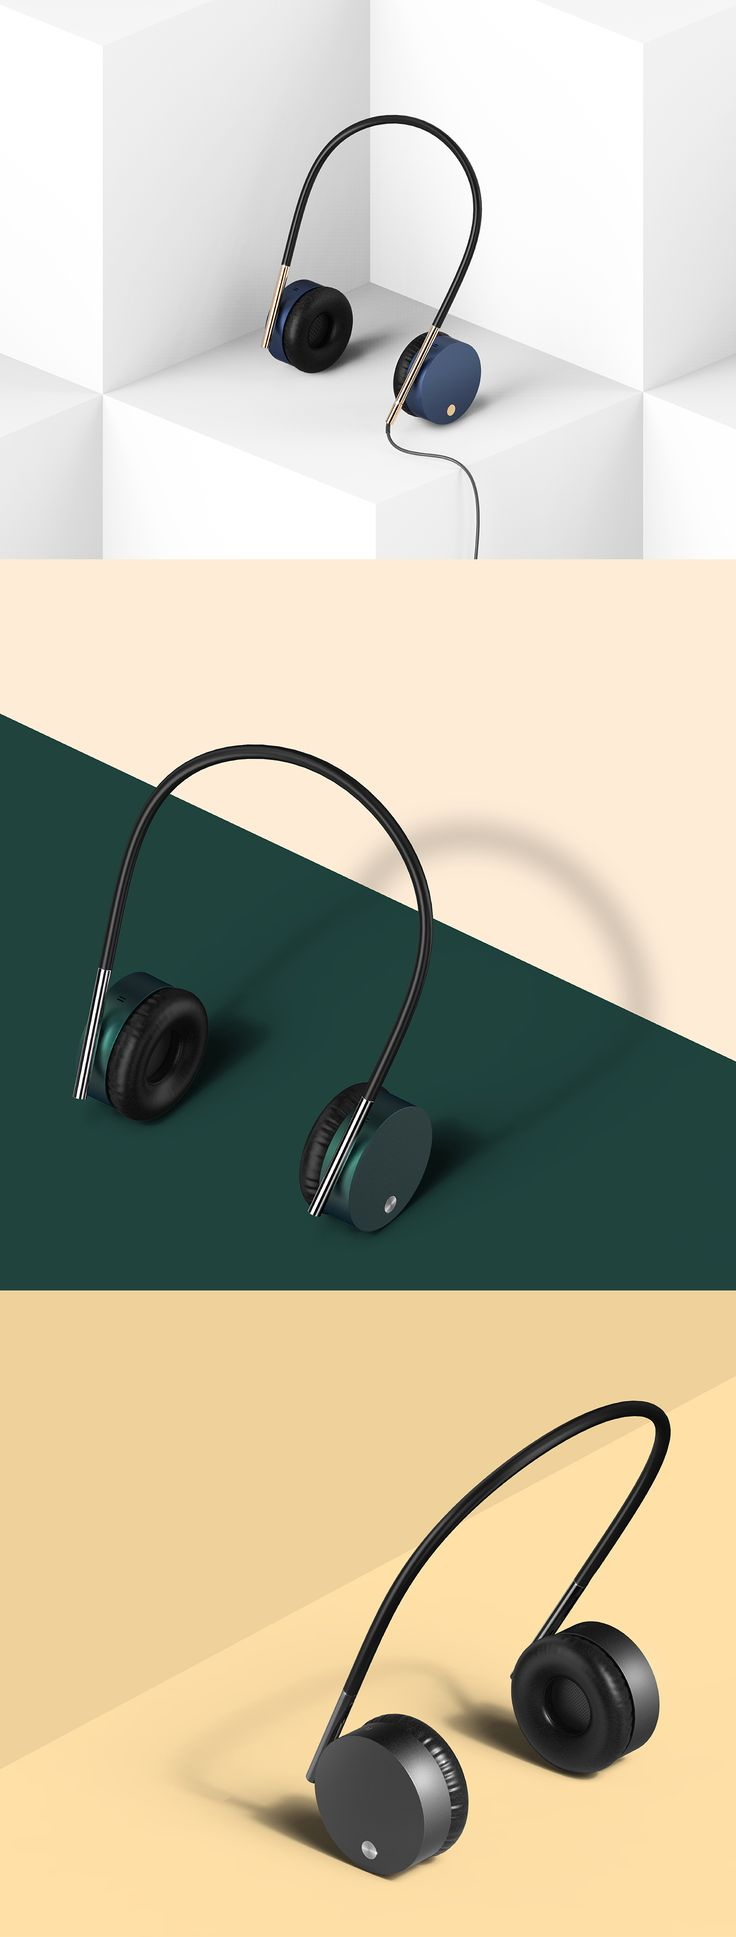 Compact design of the headset . Compared to that worn away to avoid burdensome headset | Cool headphones